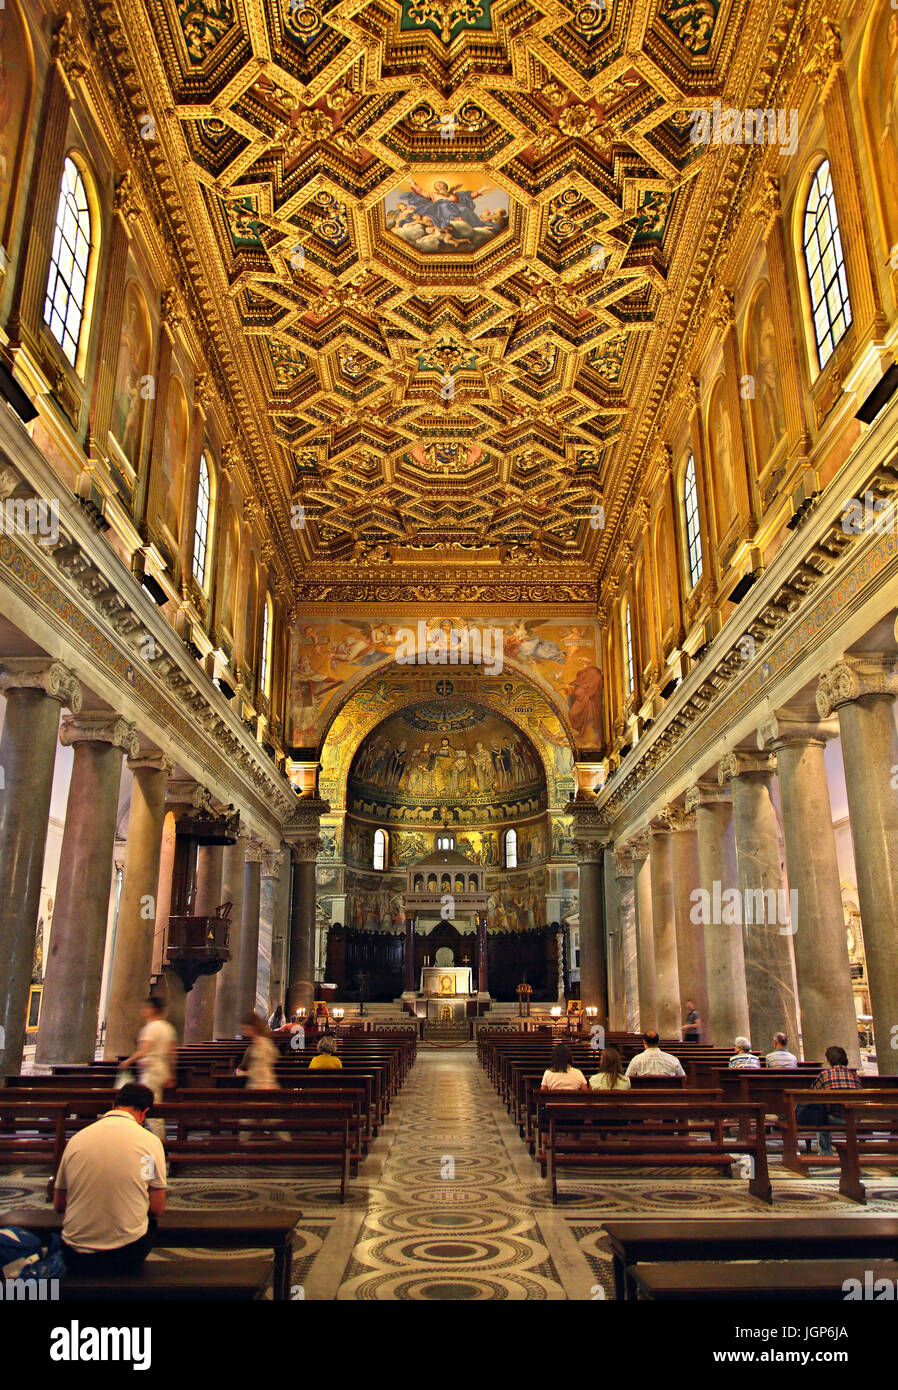 Inside view of the Basilica di Santa Maria in Trastevere, Rome, Italy. Stock Photo